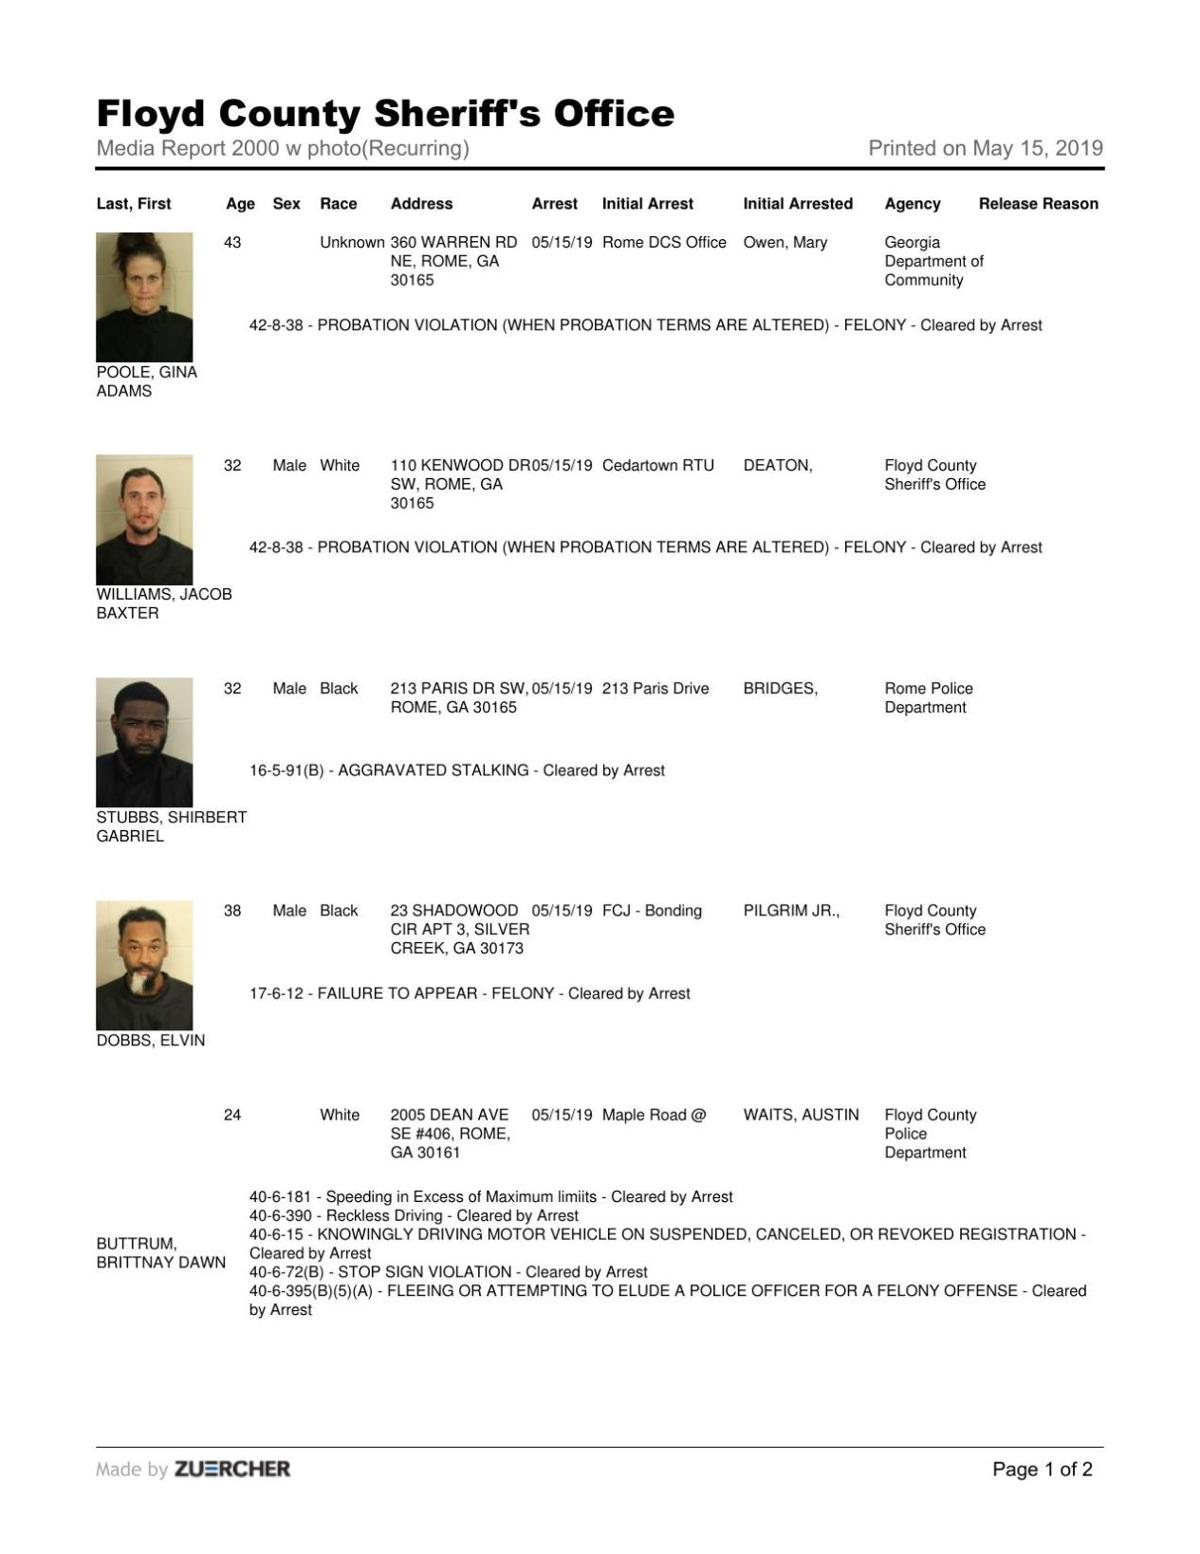 Floyd County Jail report for Wednesday, May 15